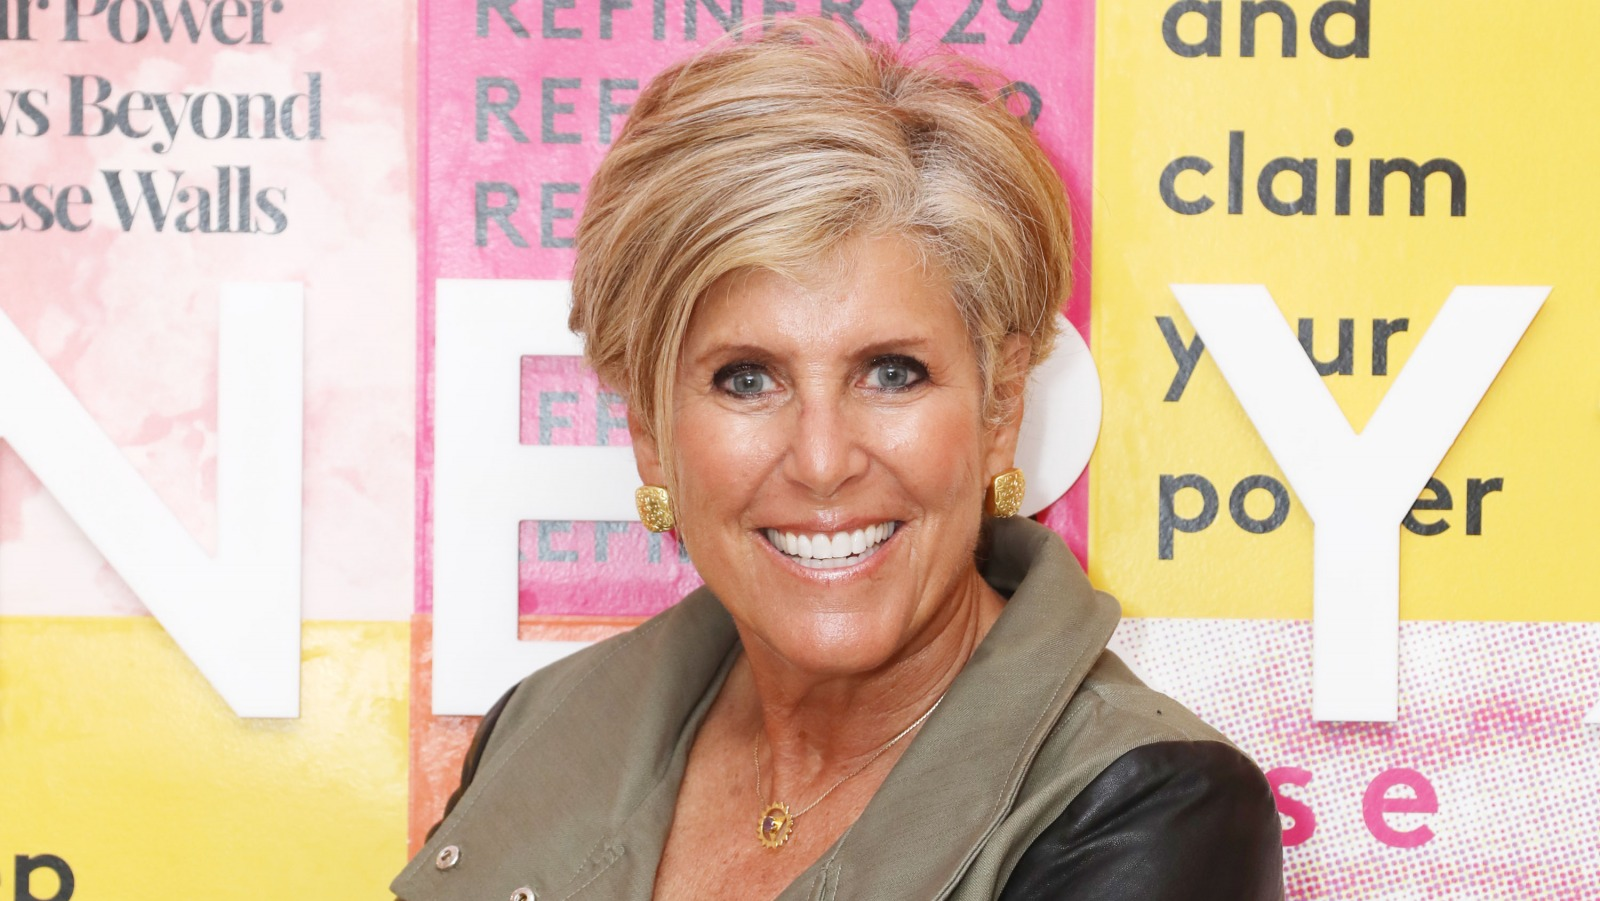 The unsaid truth about Suze Orman